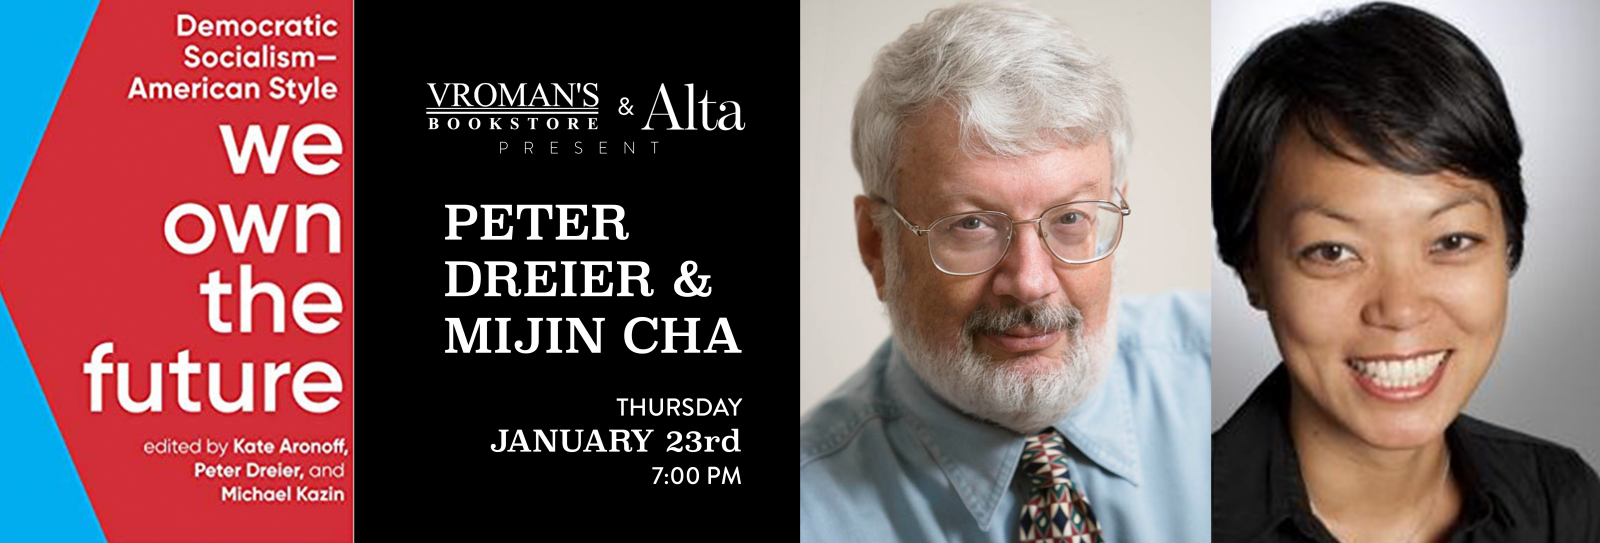 Peter Dreier and Mijin Cha book signing Thursday January 23rd at 7pm